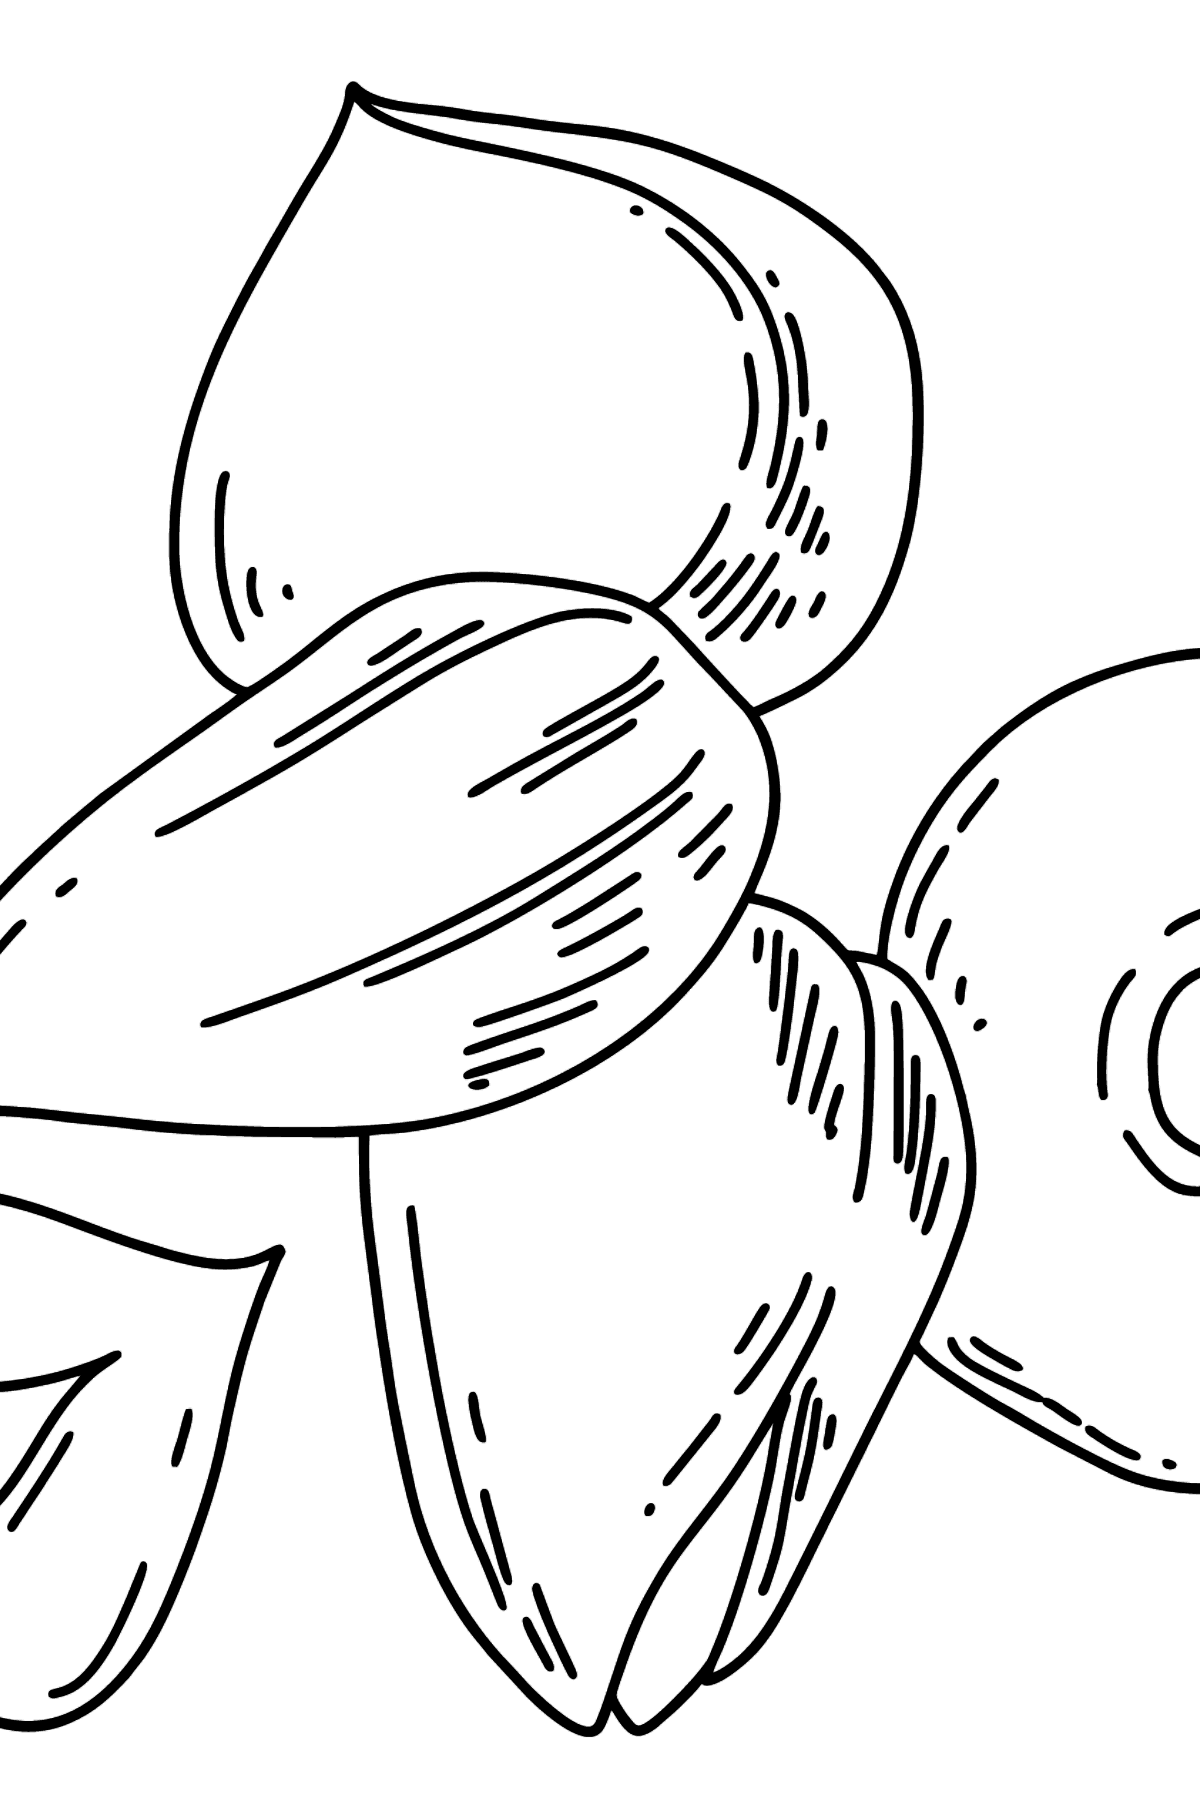 Nuts coloring page - Coloring Pages for Kids